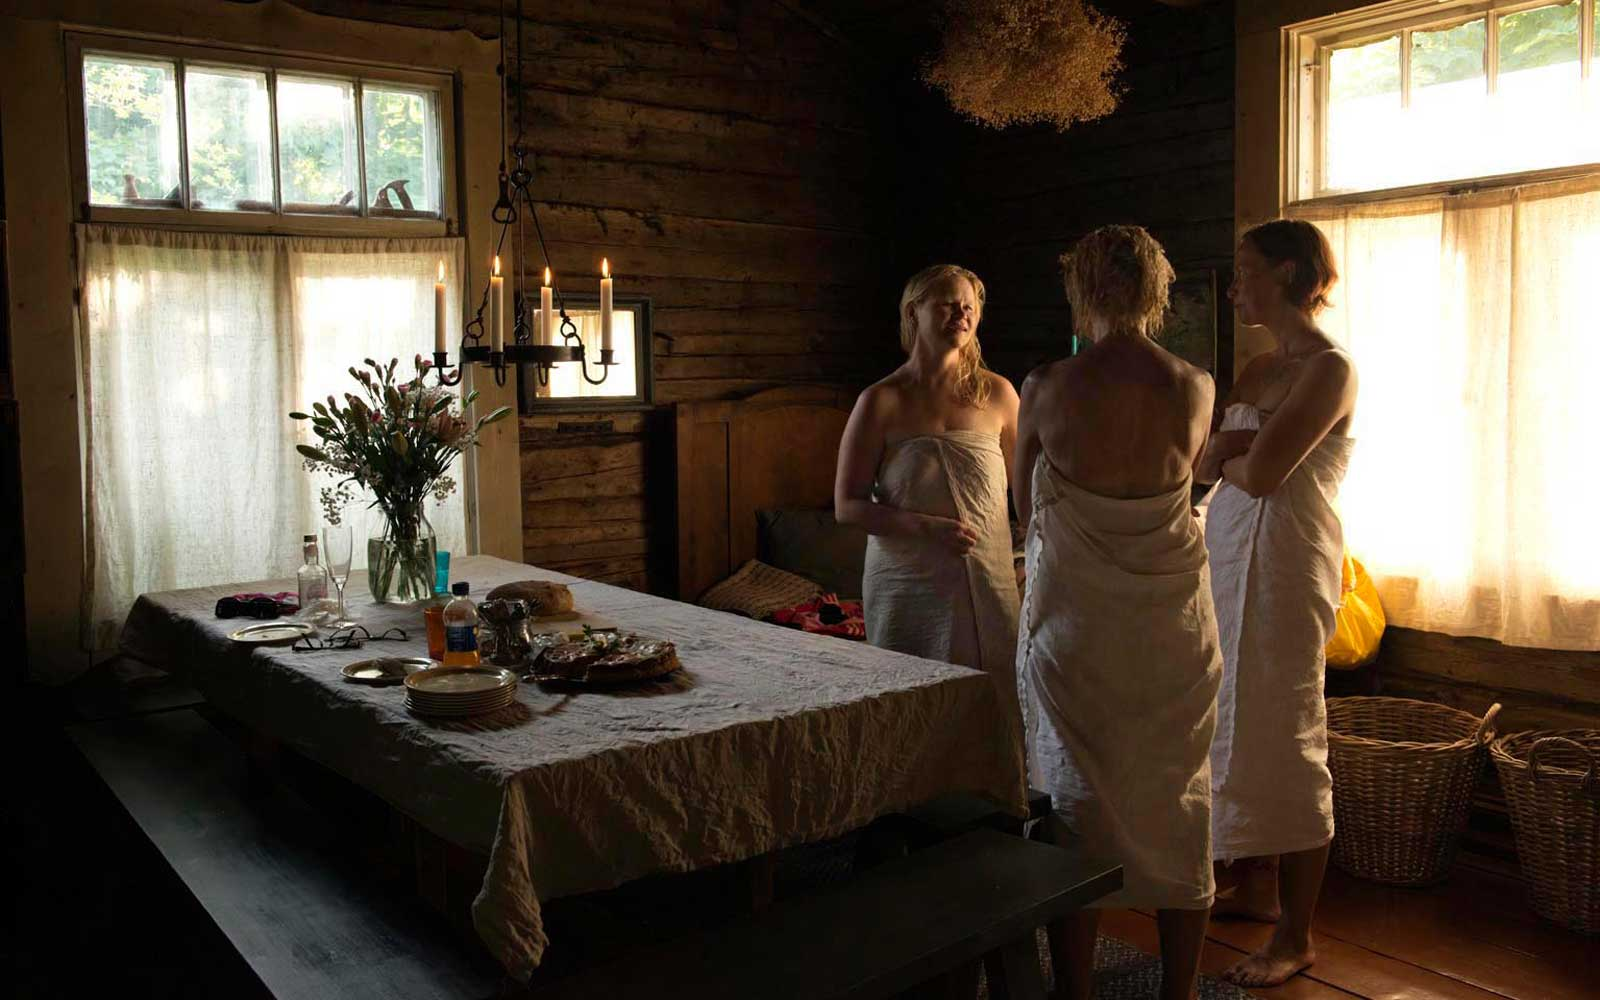 Meeting-in-the-sauna-Finland How to treat depression with foods?